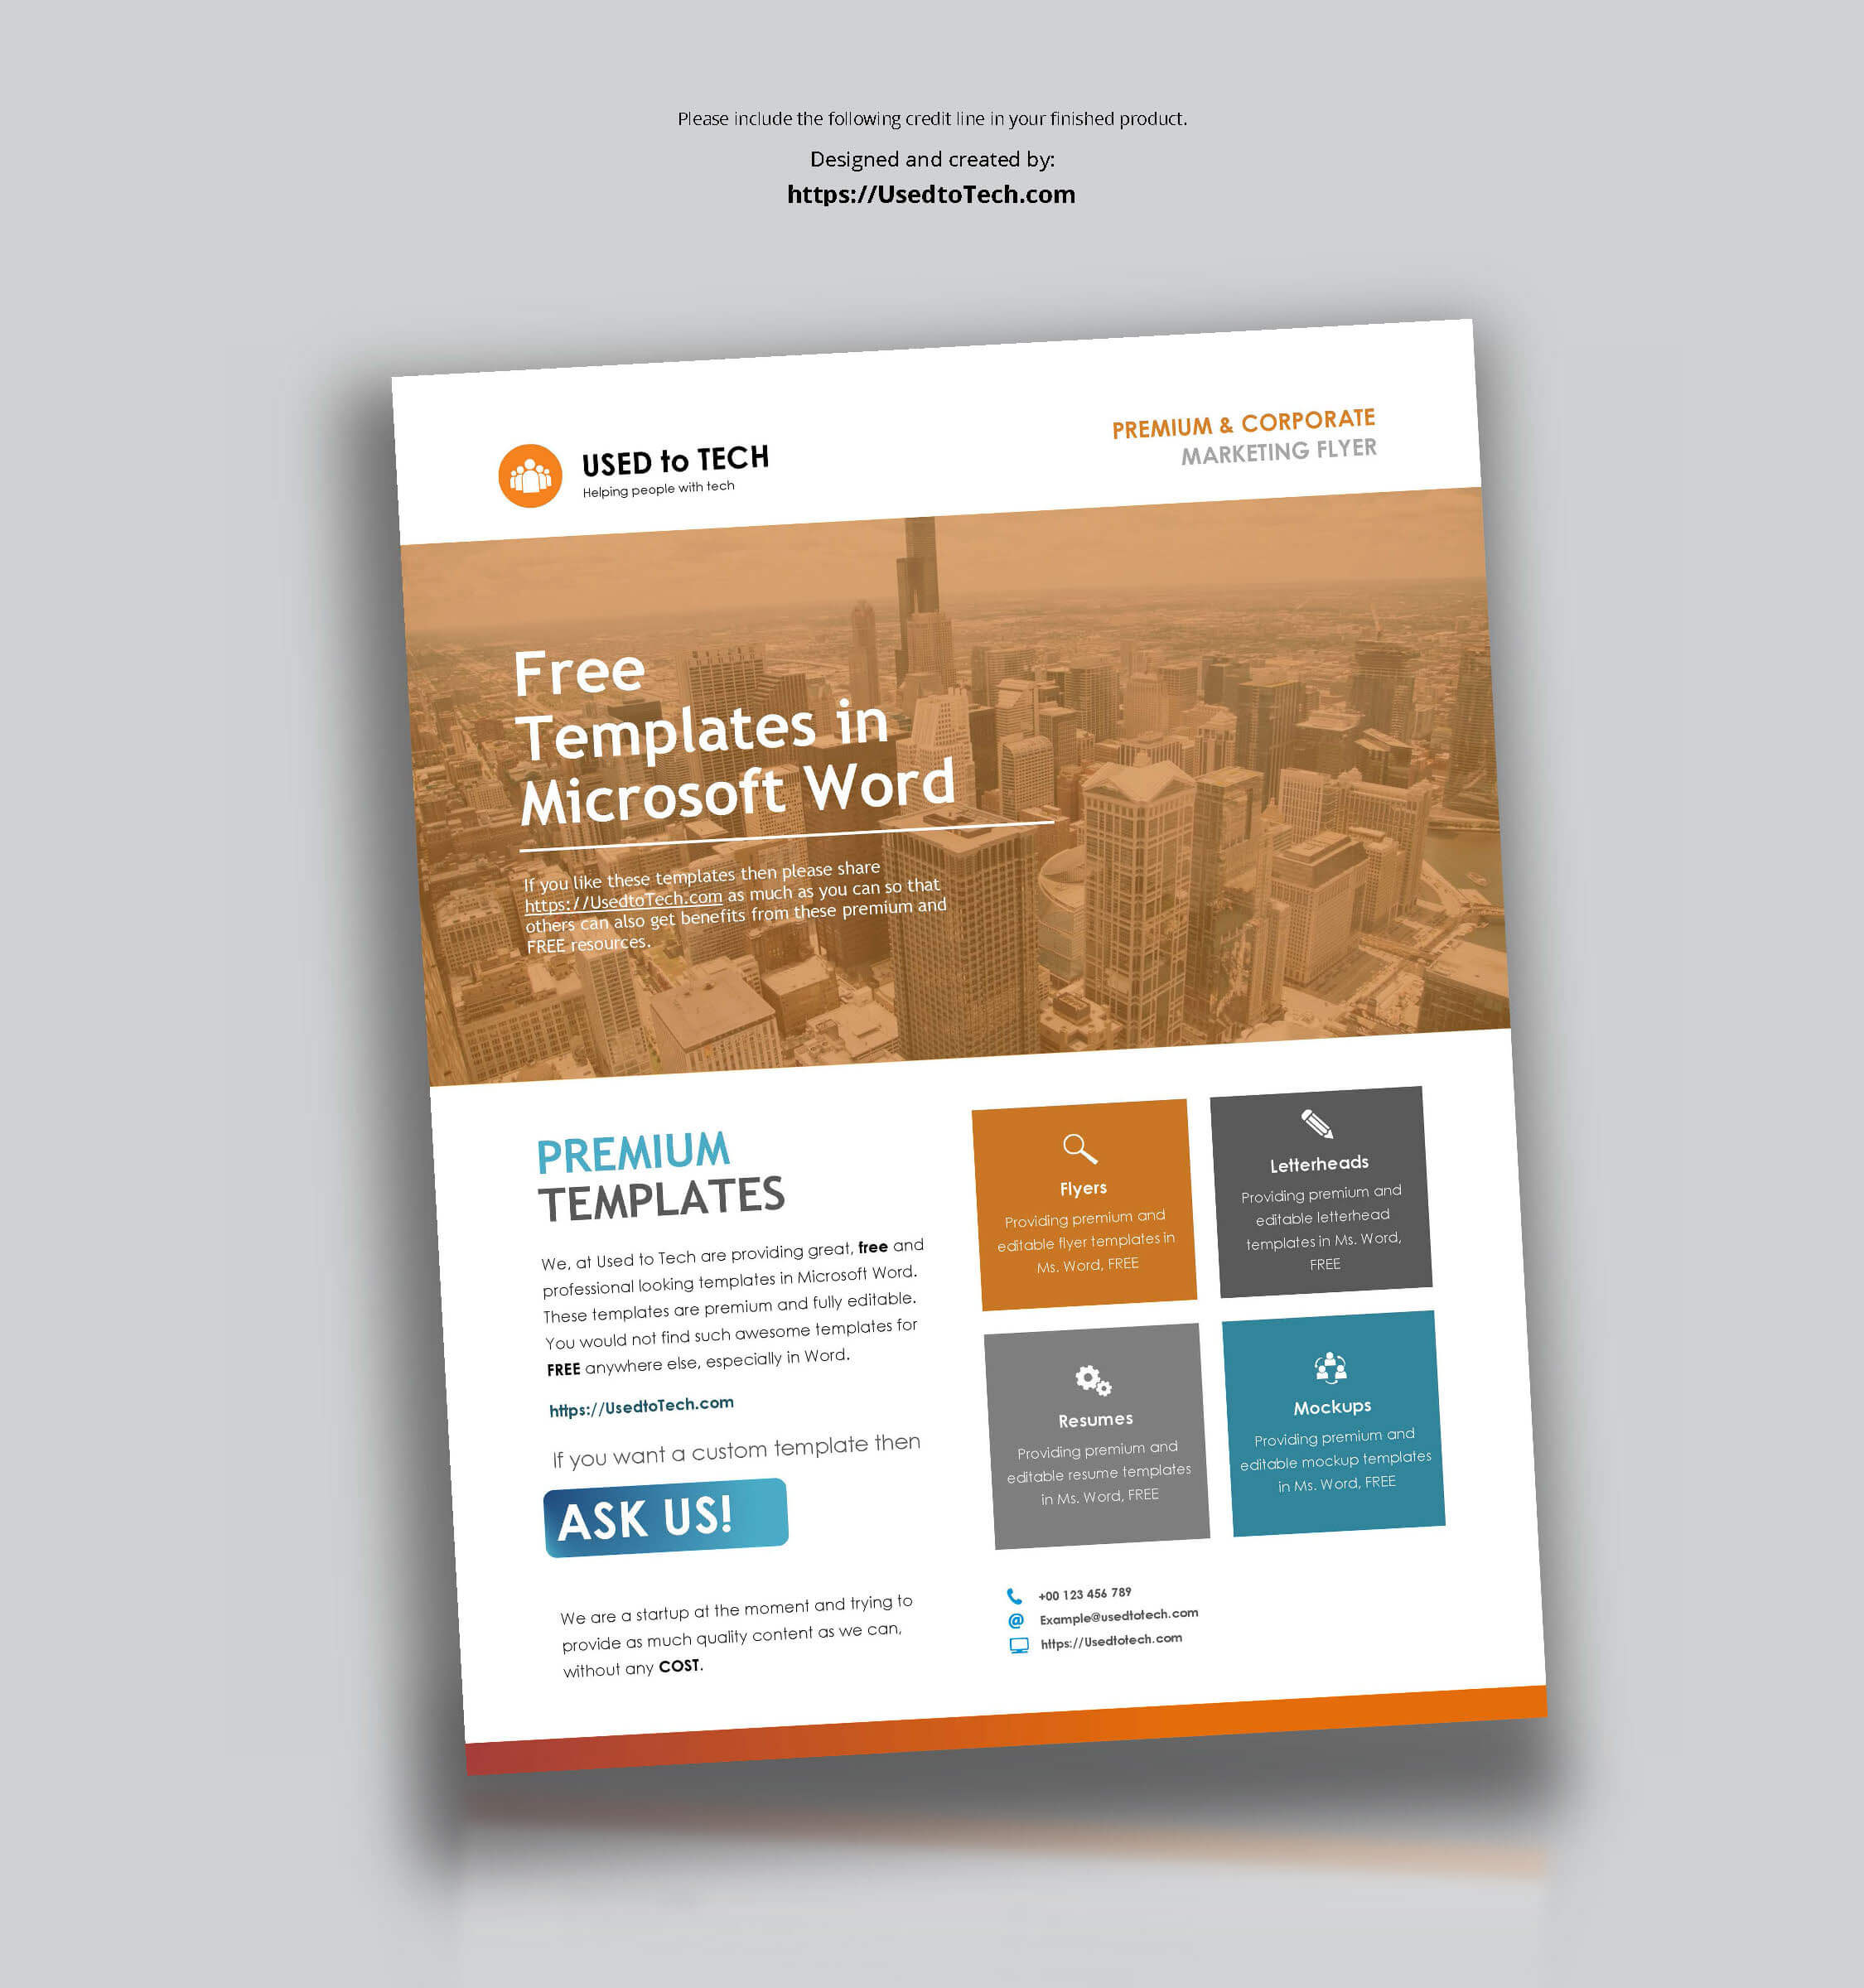 Corporate Flyer Design In Microsoft Word Free - Used To Tech Pertaining To Templates For Flyers In Word